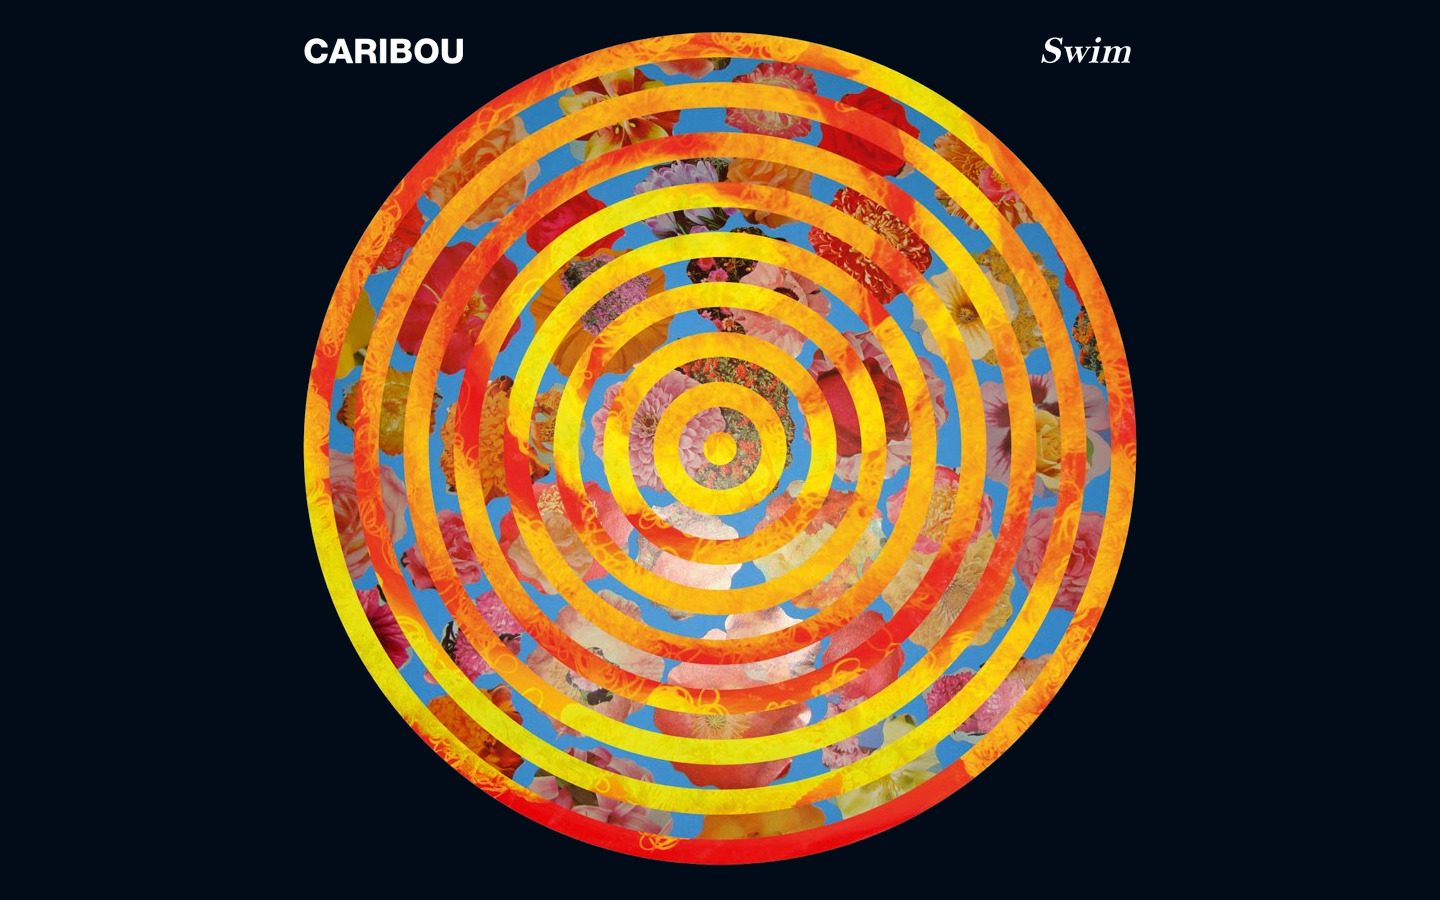 caribou Album covers Music HD Wallpaper